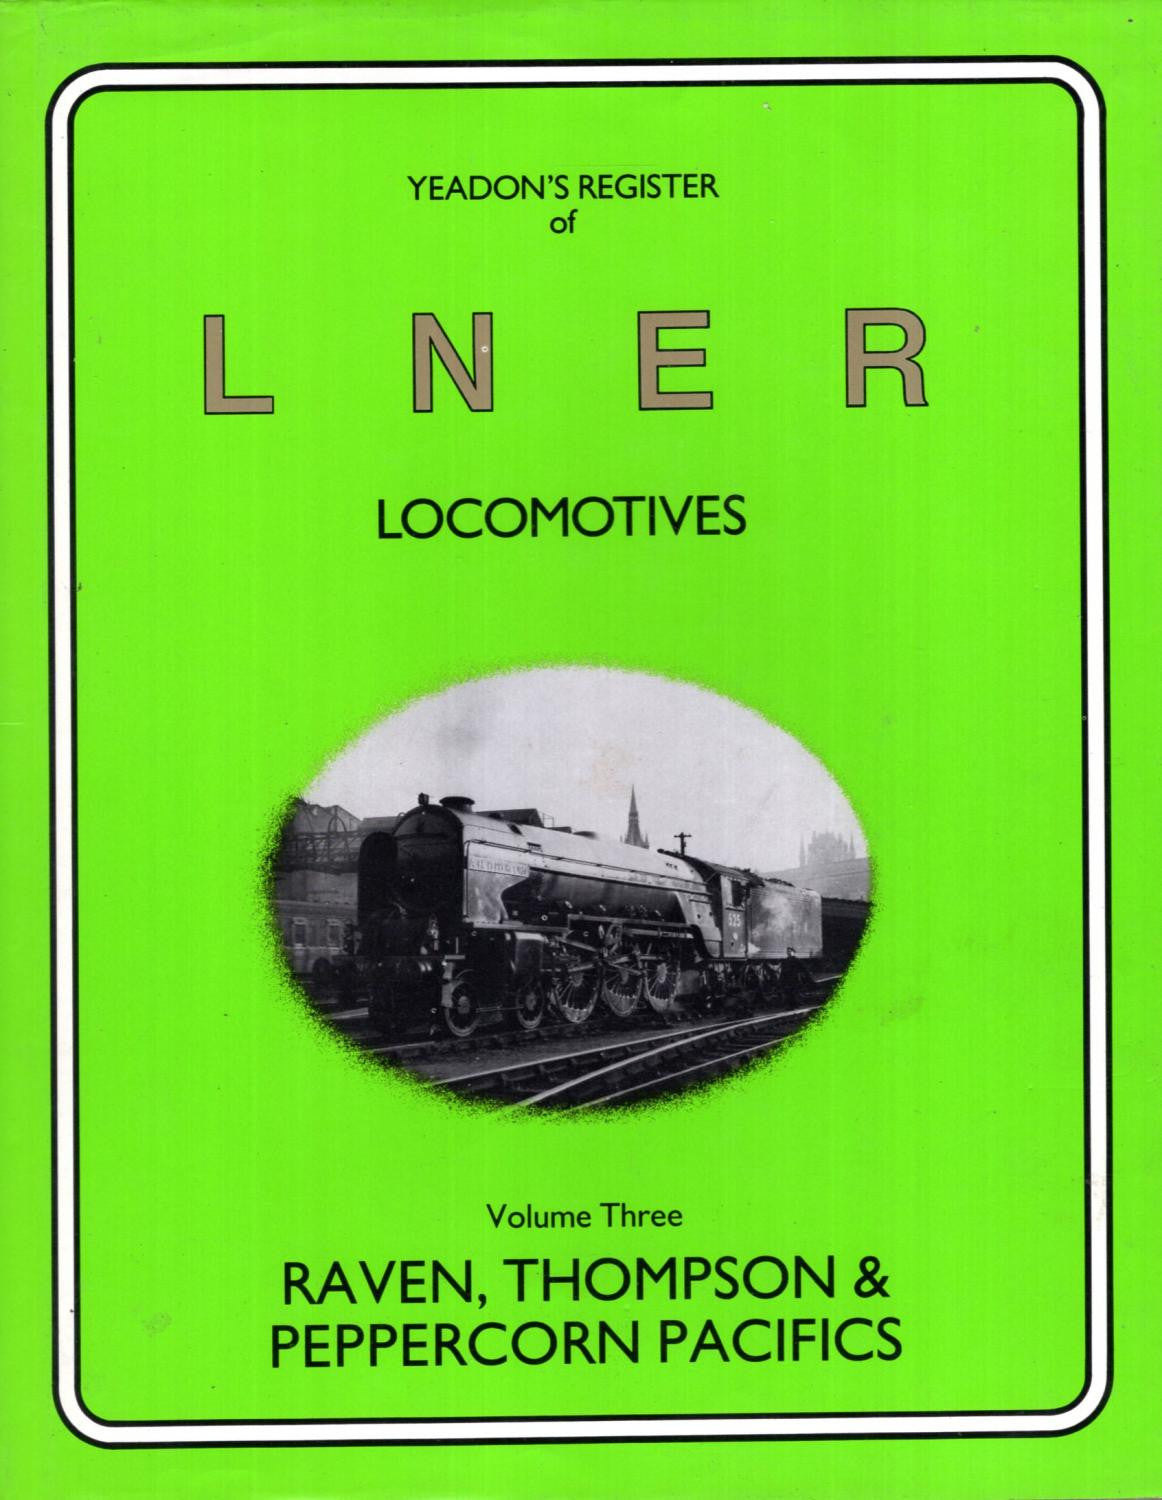 Yeadon's Register of LNER Locomotives, Volume  3 - Raven, Thompson & Peppercorn Pacifics